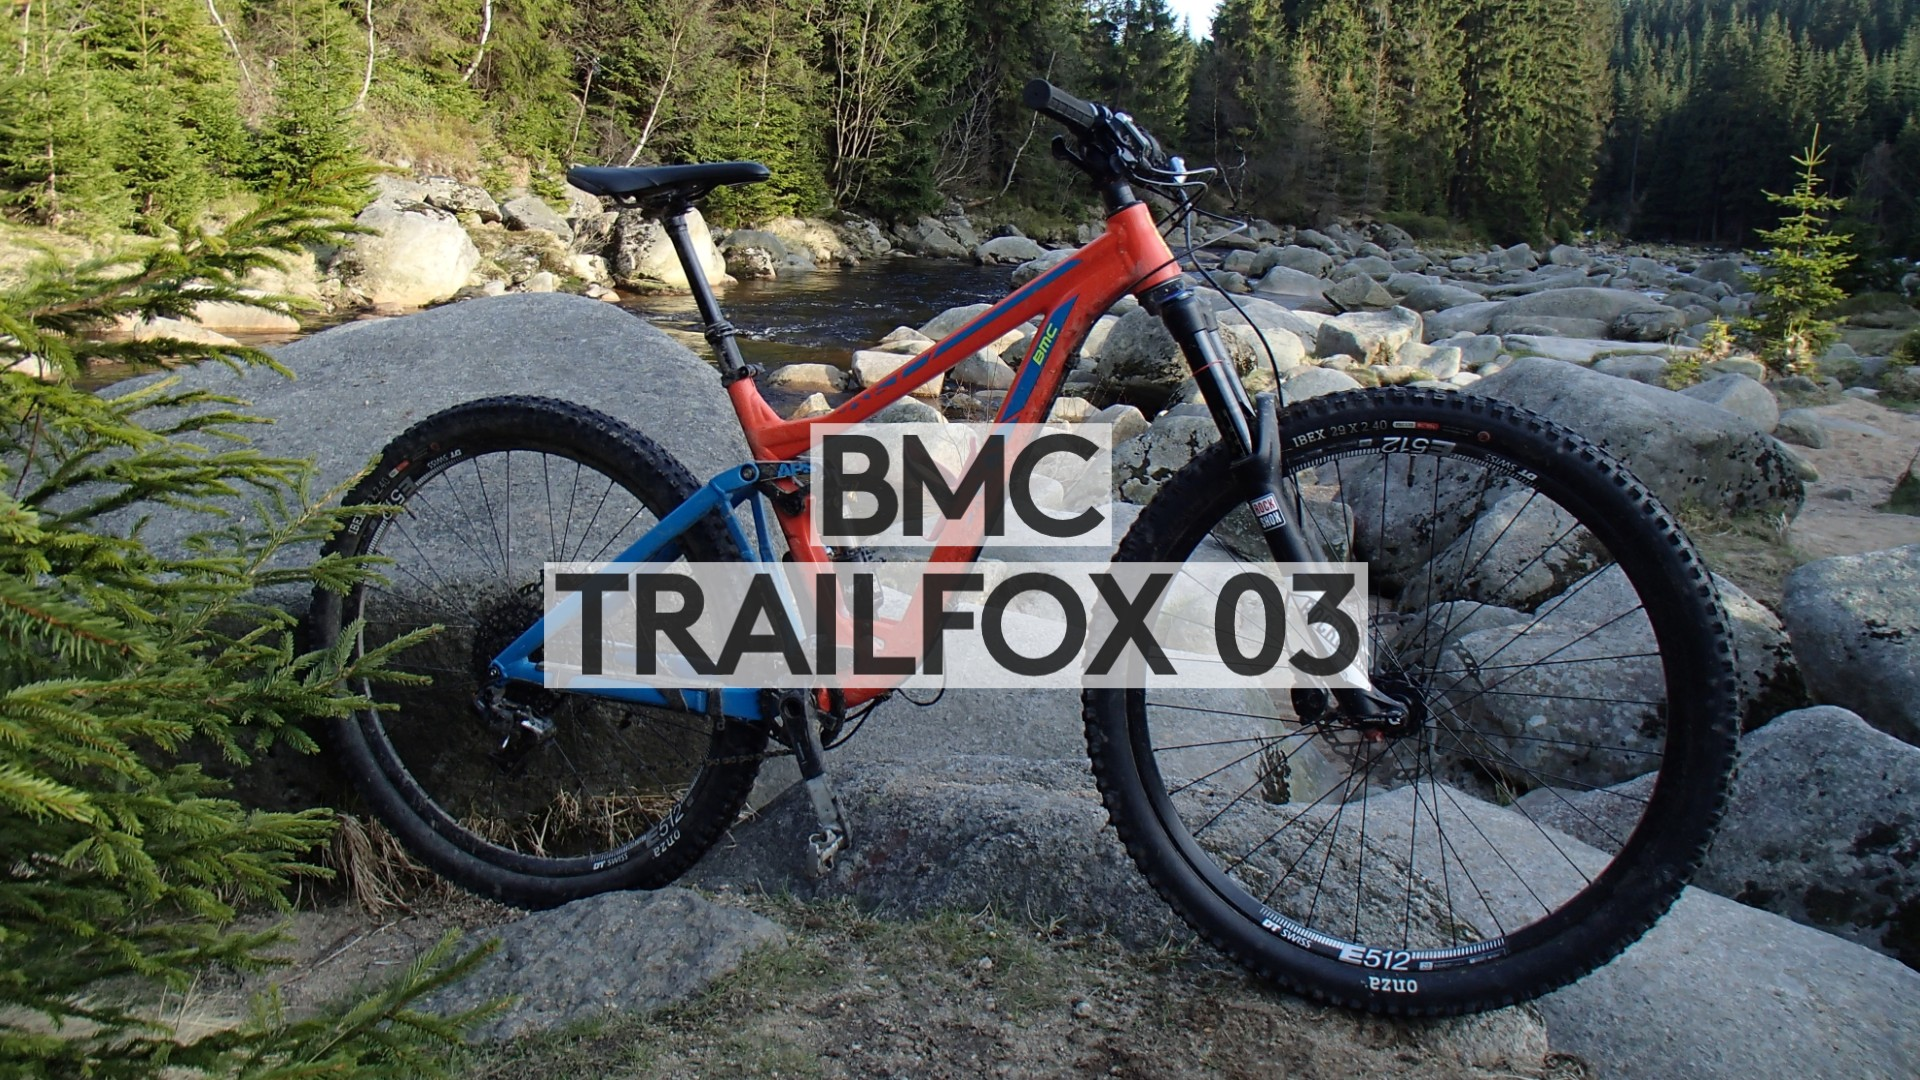 BMC Trailfox 03